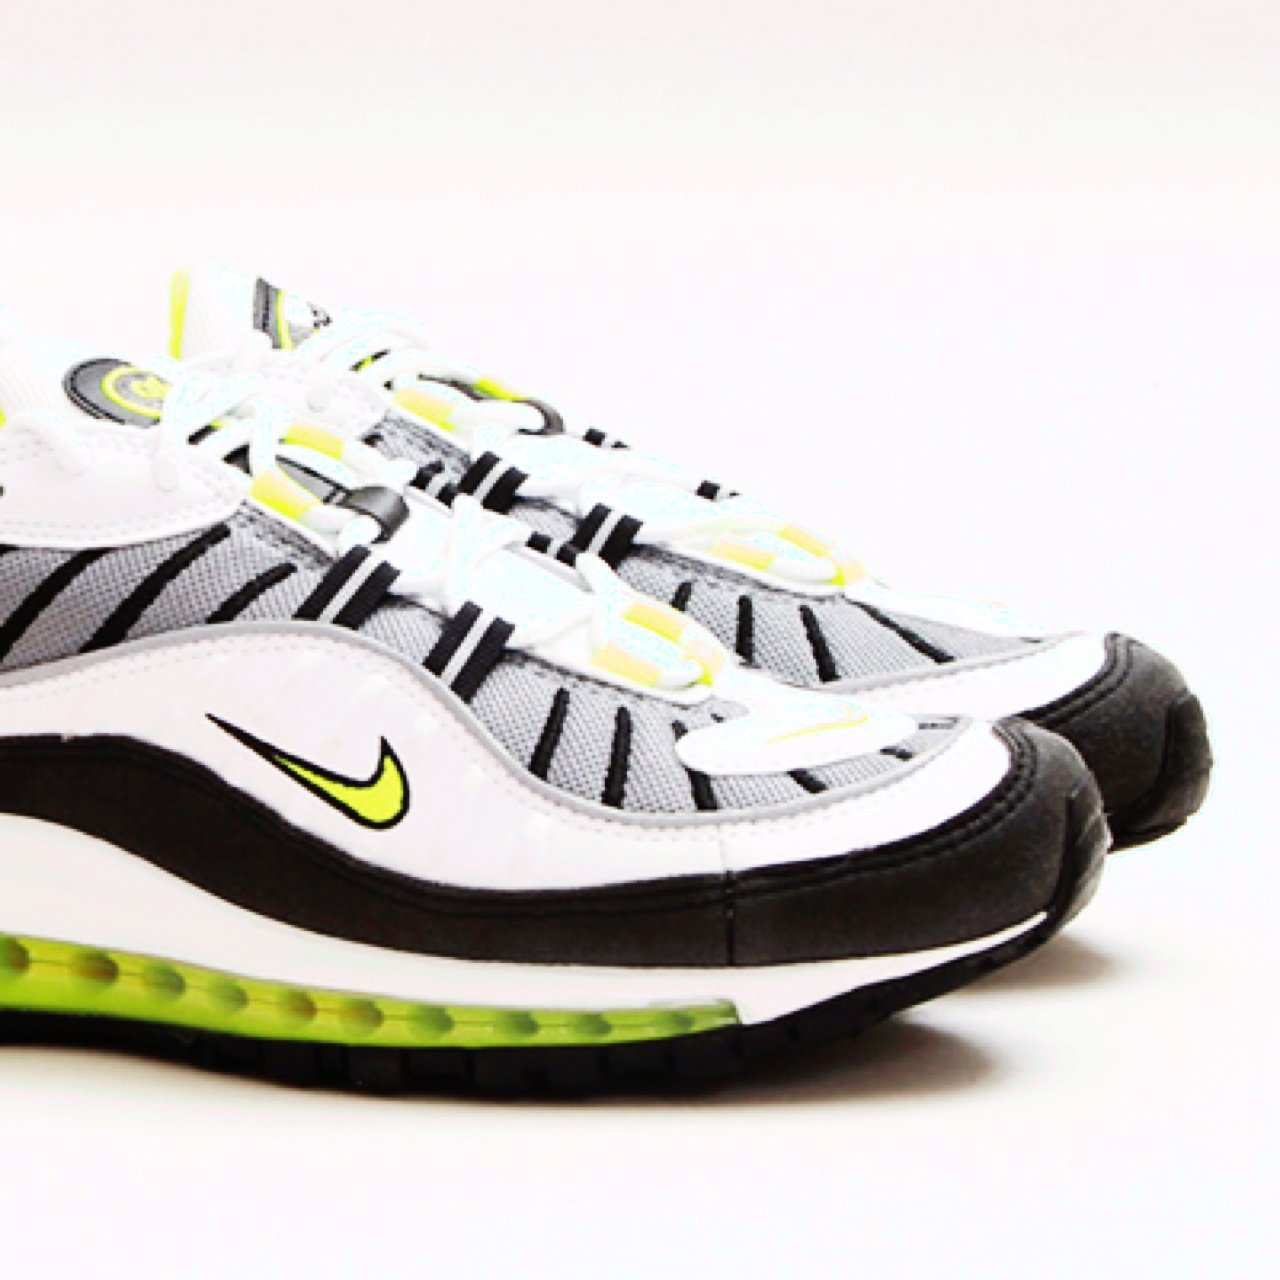 4daabca903 Nike air max 98 neon green RRP £200 open to offers - Depop